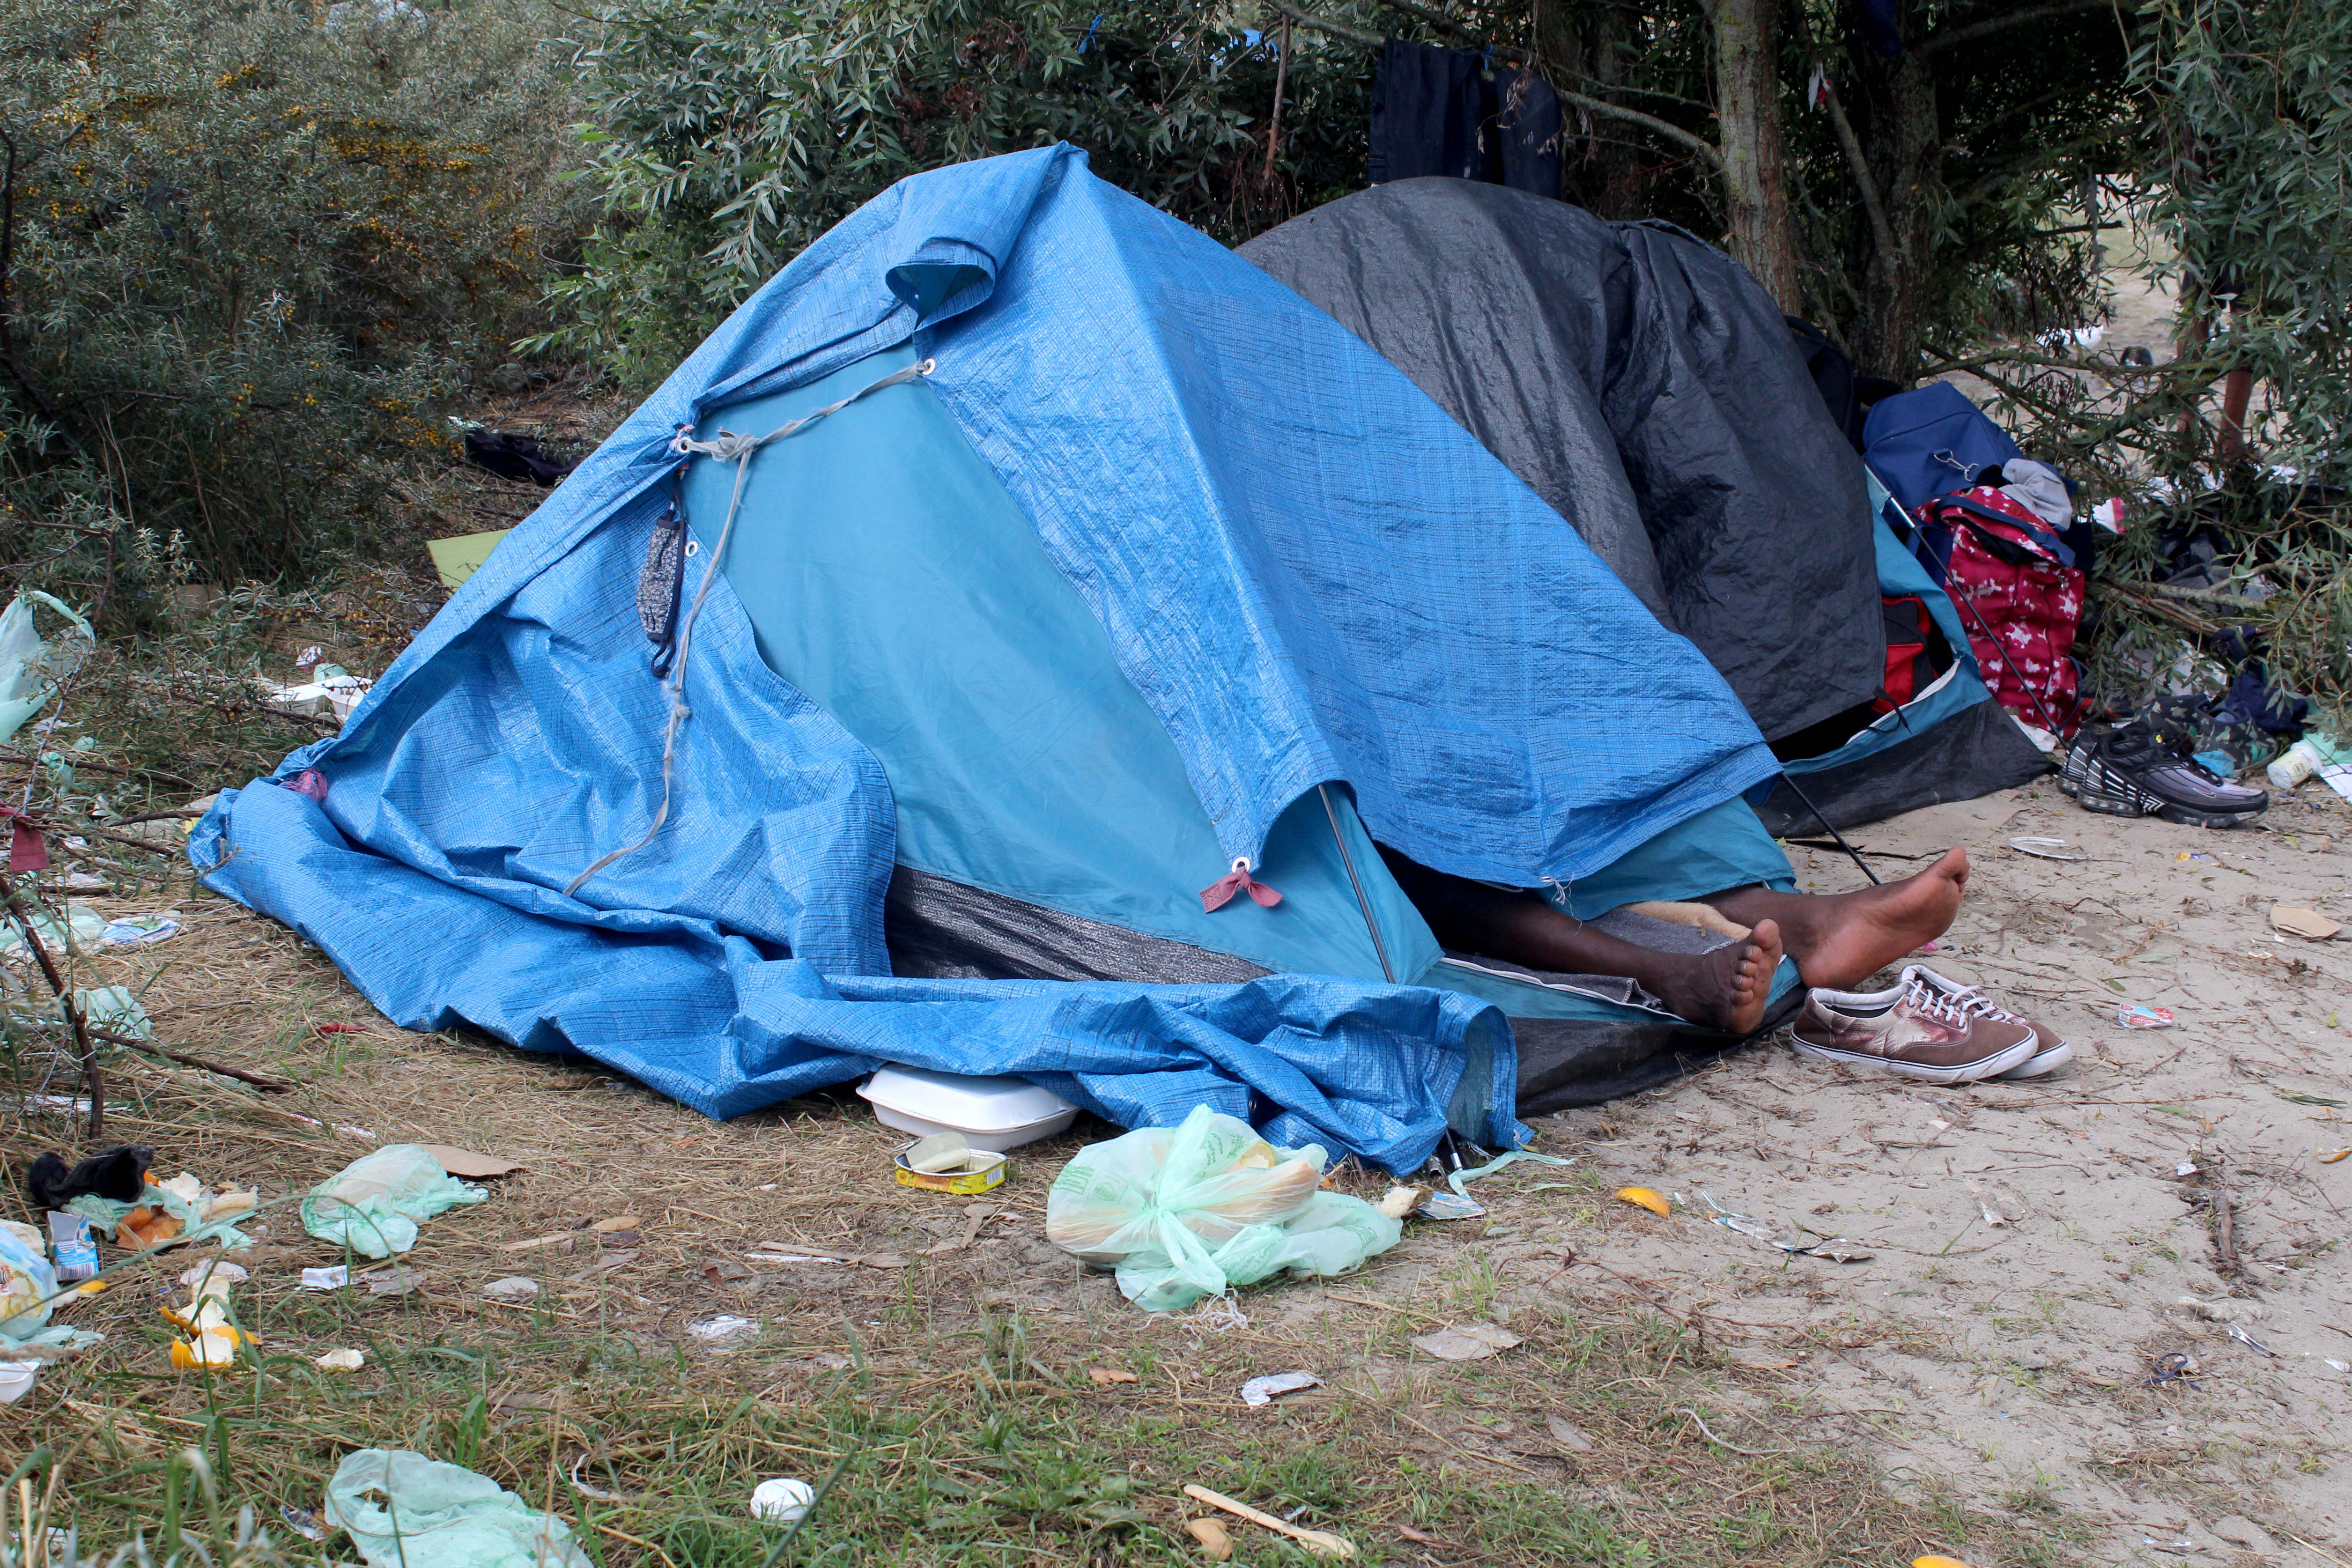 A migrant sleeps in tent at a makeshift migrant camp near the hospital in Calais, France, September 10, 2021. REUTERS/Forrest Crellin